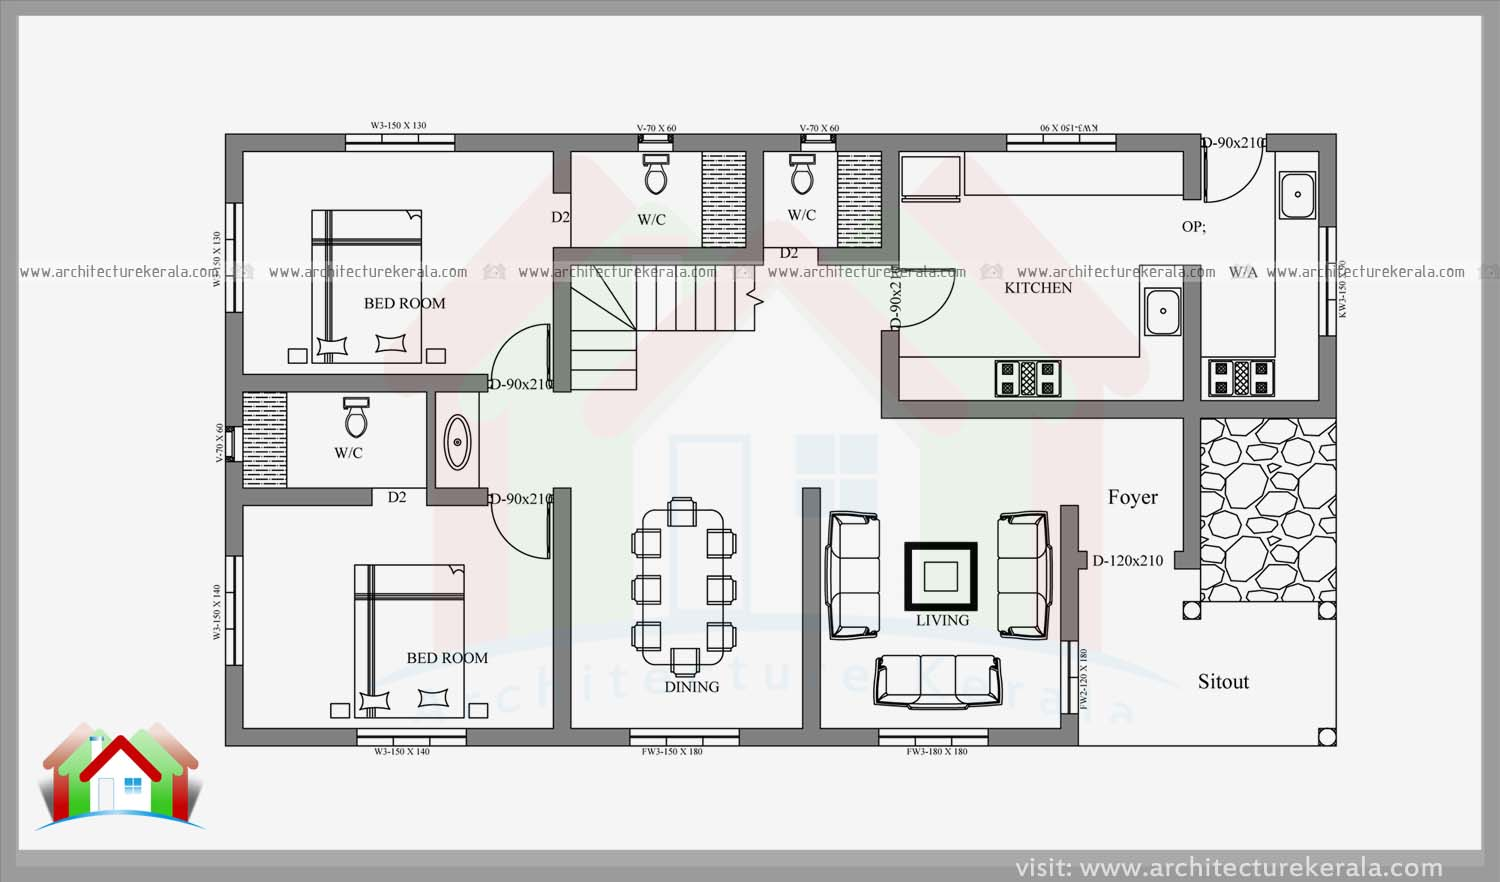 Stylish 4 bedroom small plot home design with free plan for Plot plan for my house online